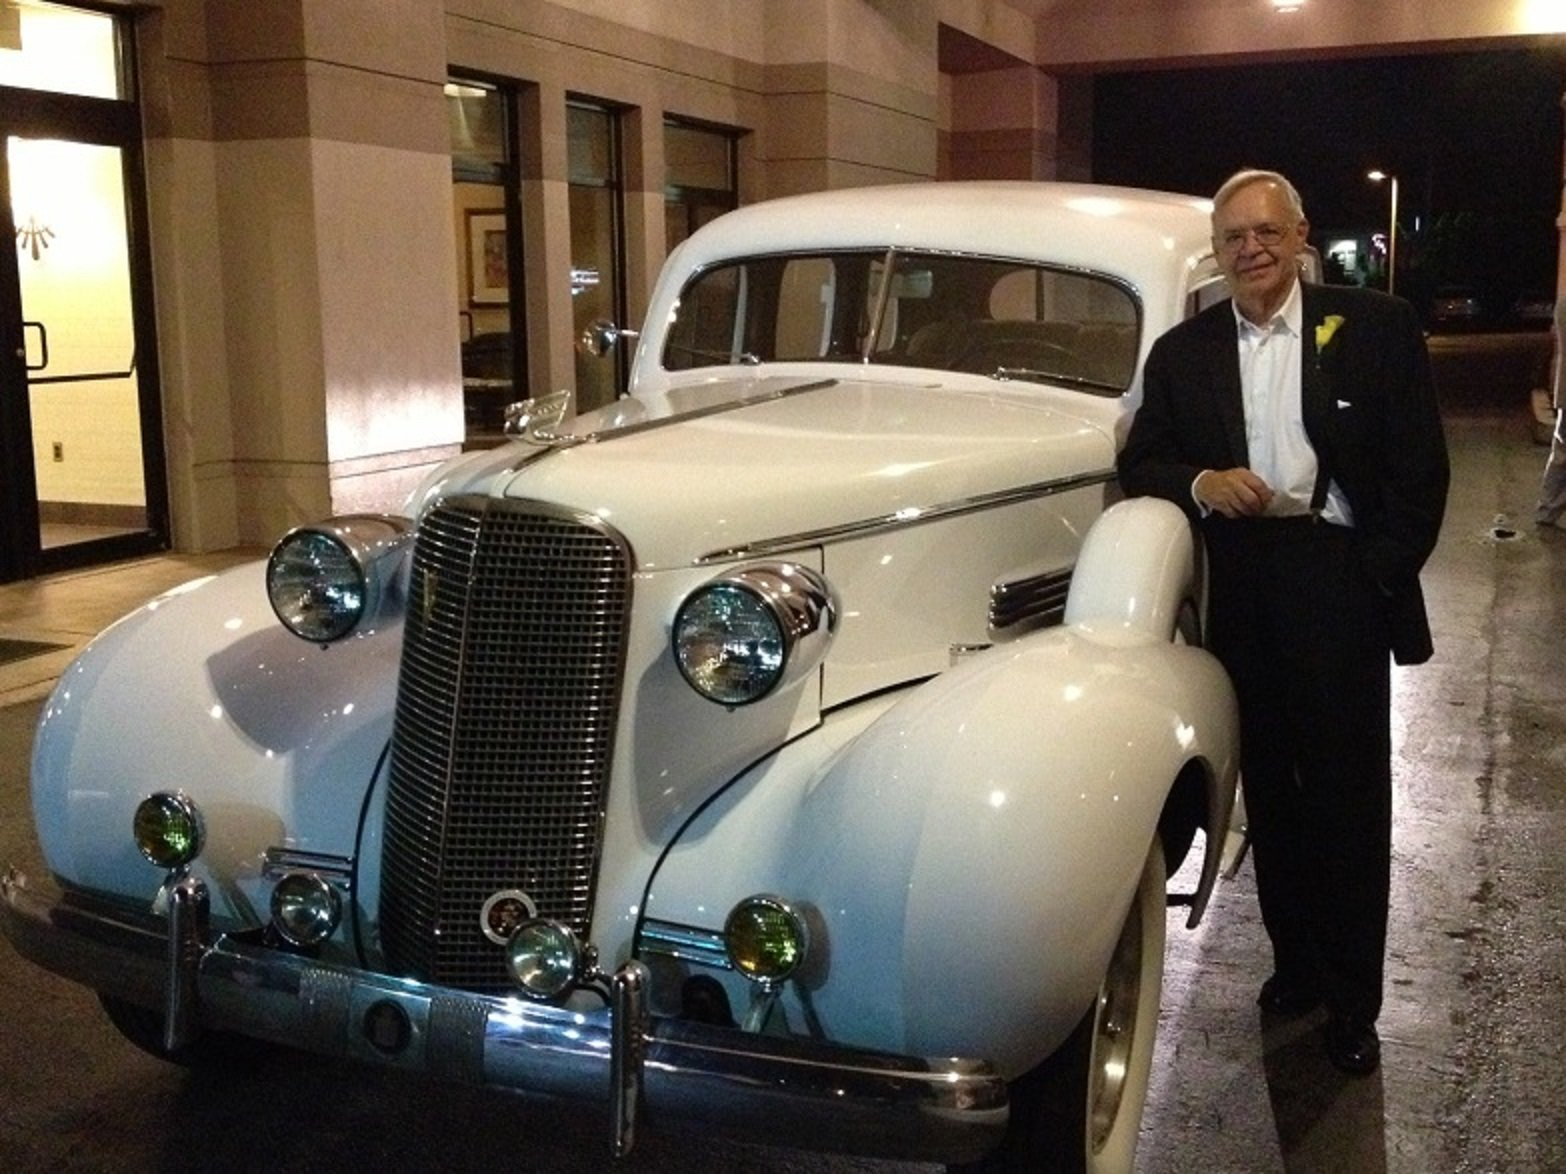 1937 Cadillac 85 Touring Sedan For Sale (picture 3 of 6)